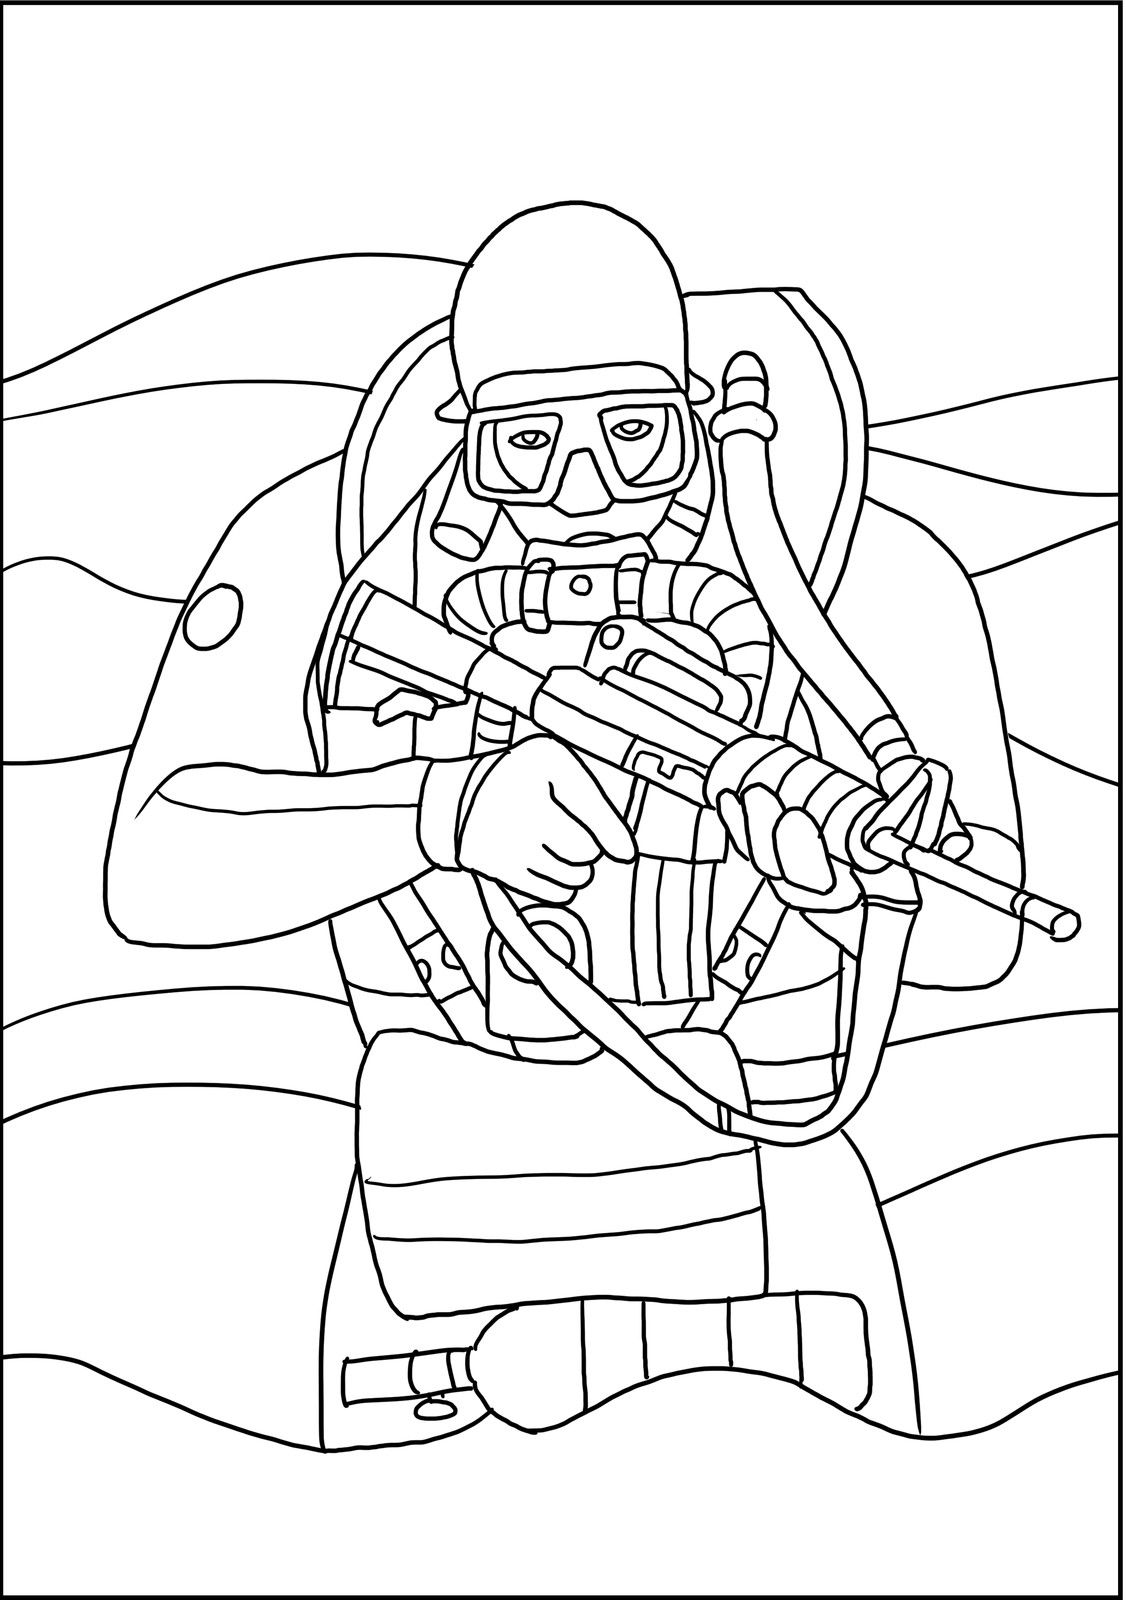 Navy Seals Military Coloring Book Coloring Books Coloring Pages Line Art Drawings